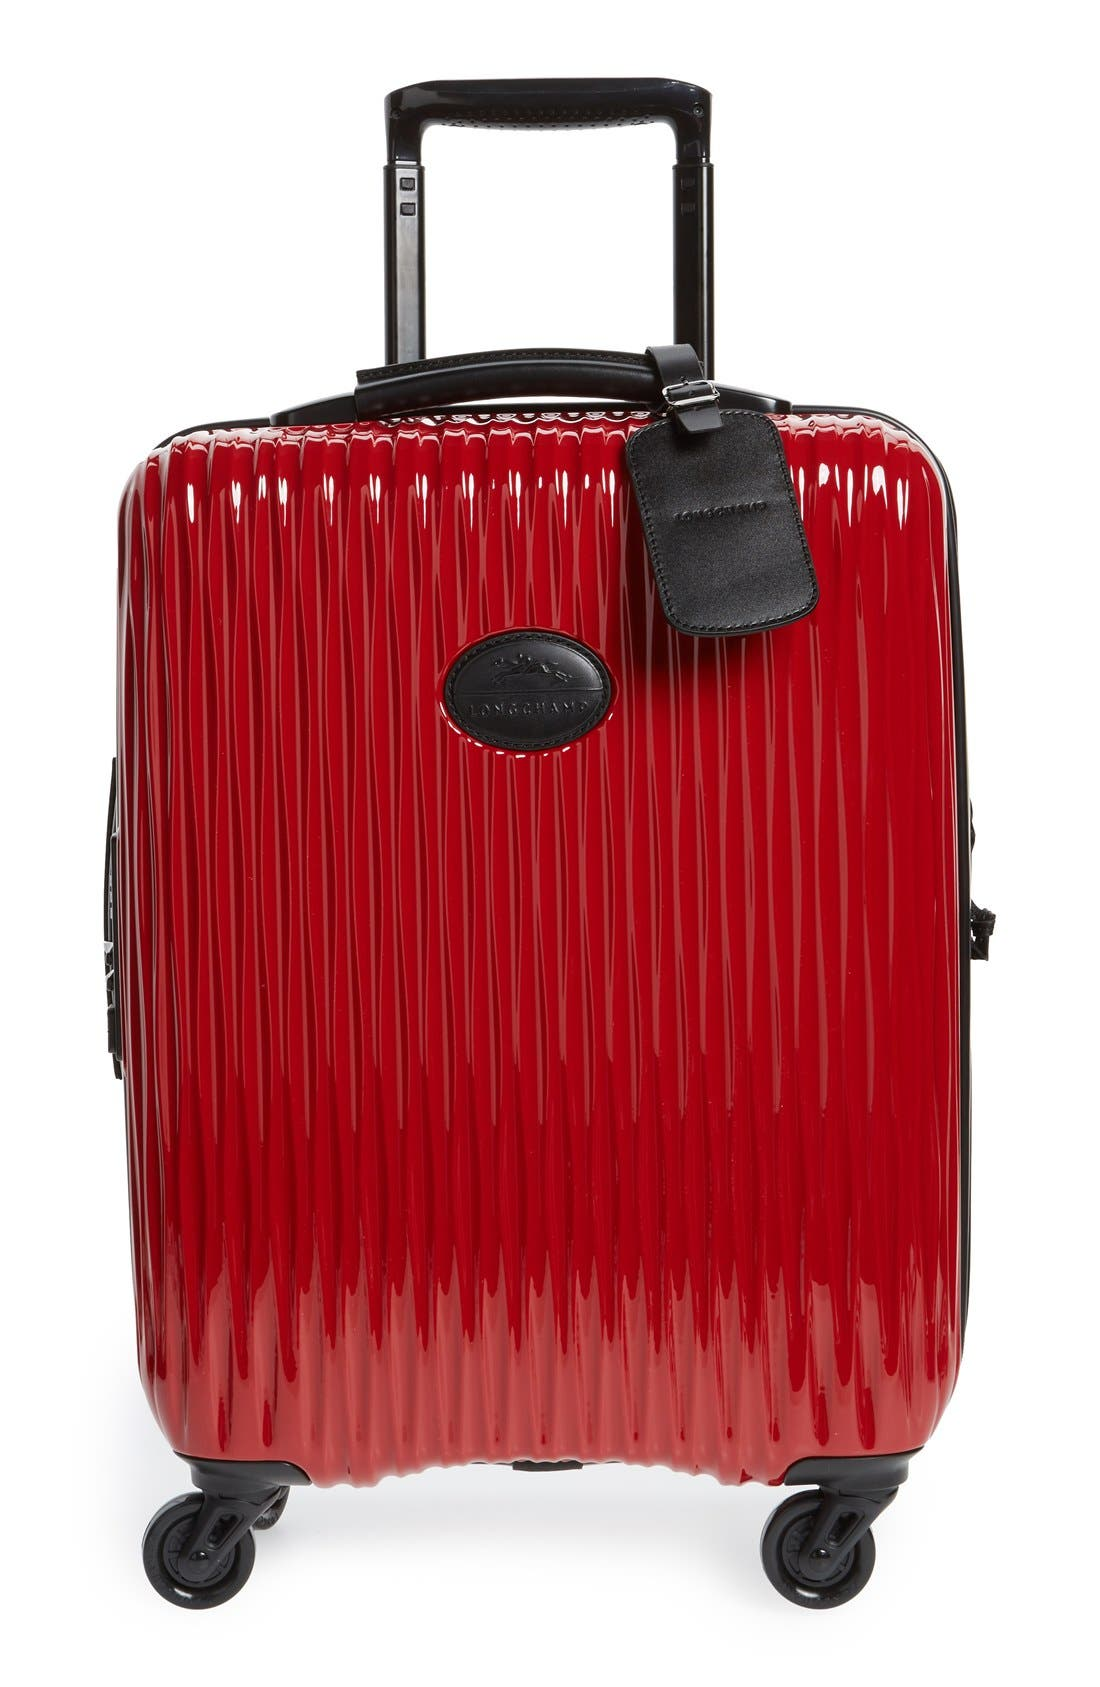 LONGCHAMP 'Fairval' Four-Wheeled Hard Shell Suitcase